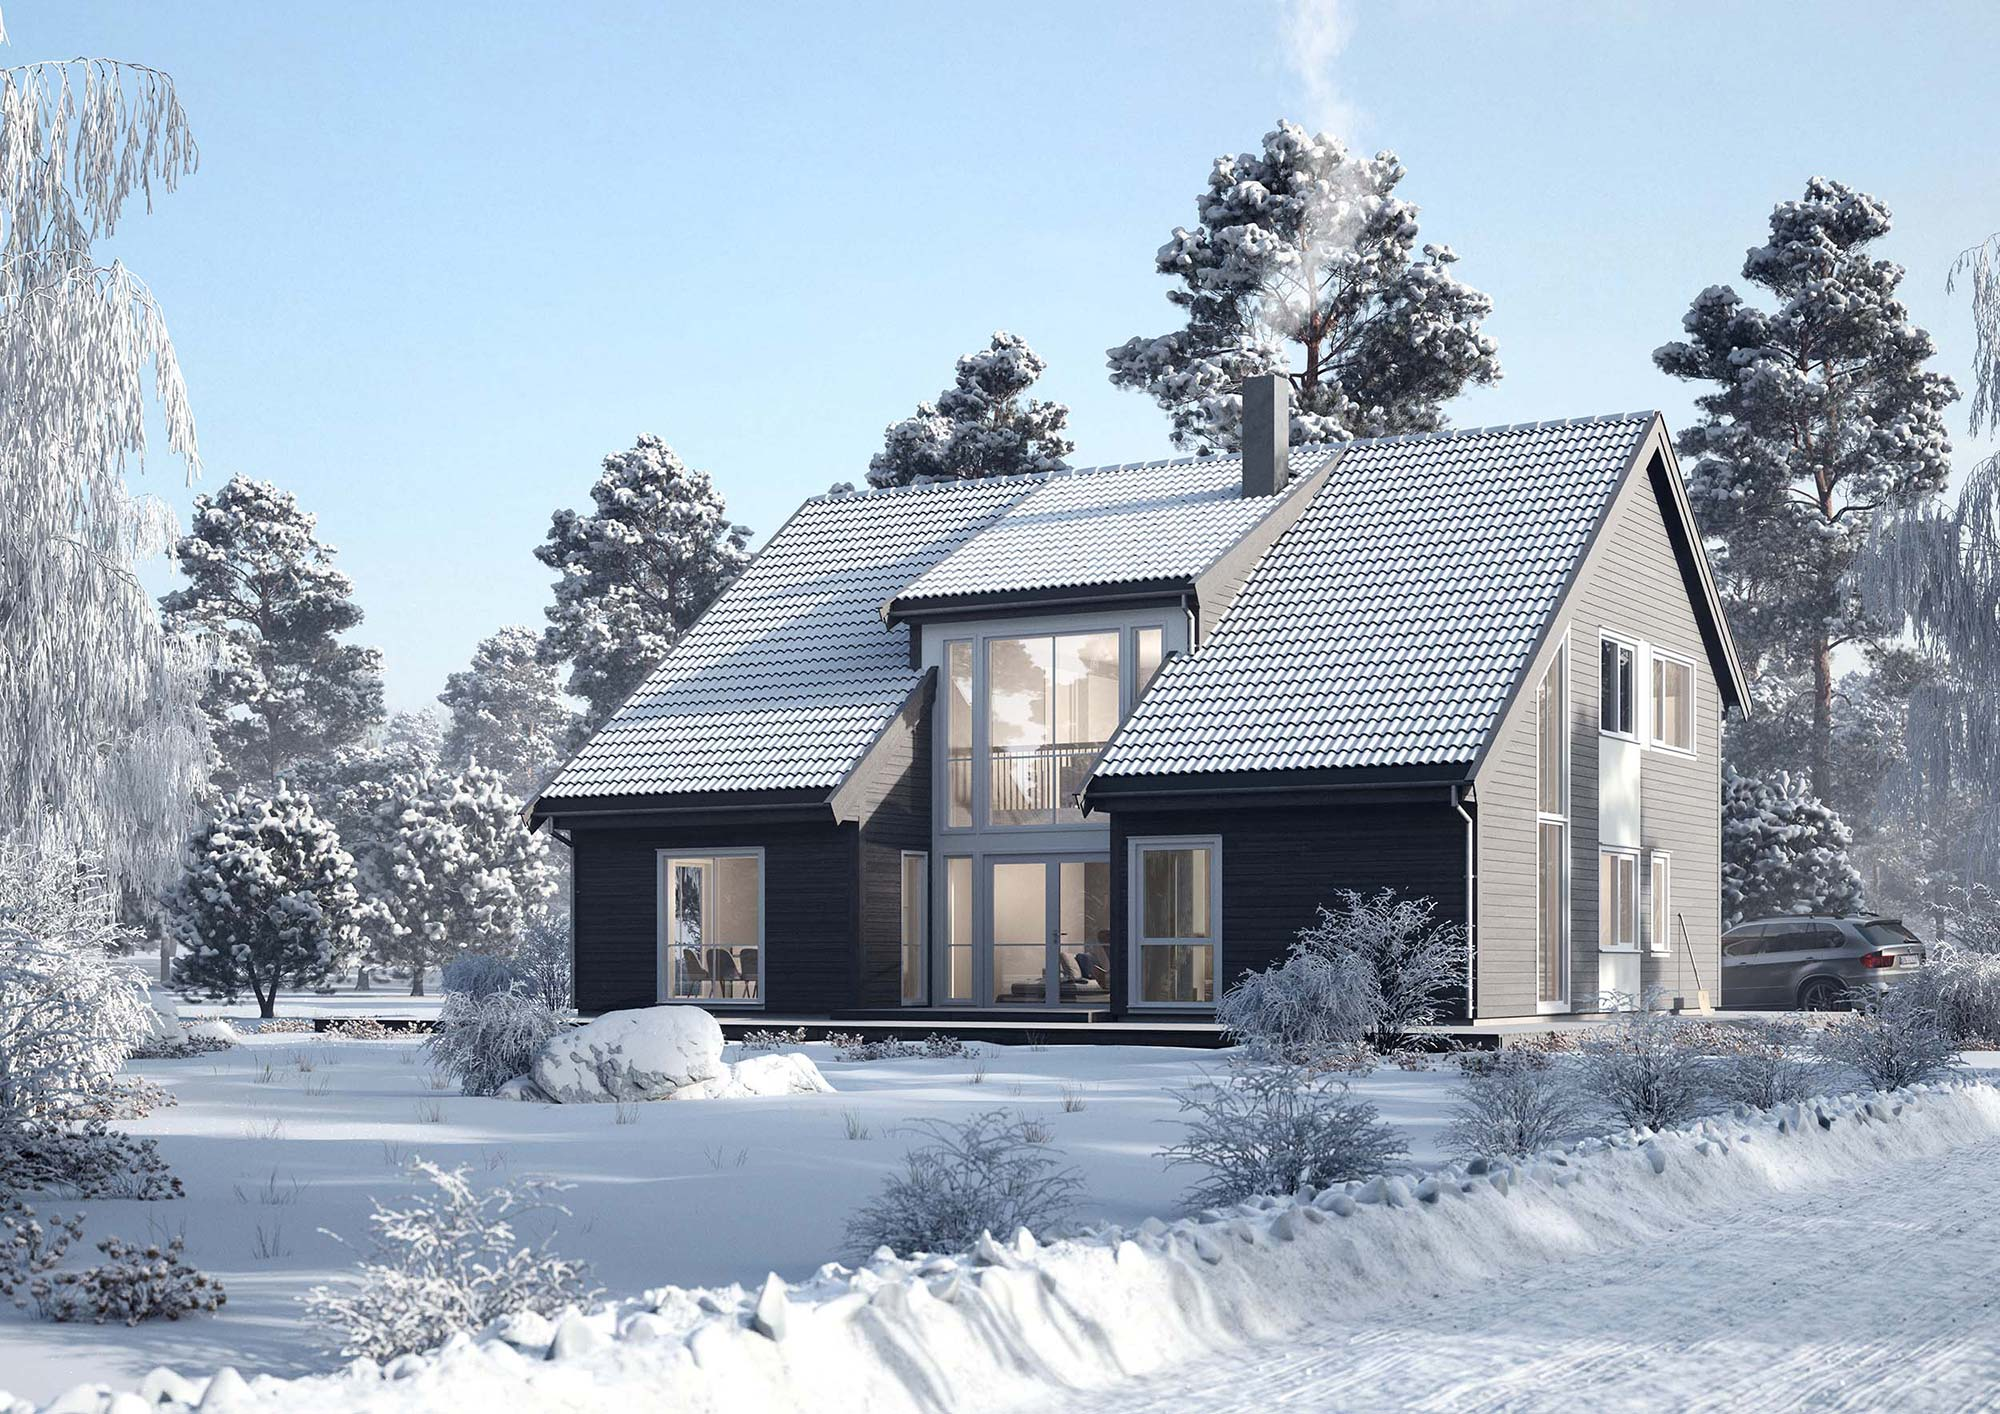 Nordbohus 3d exterior images by Cadesign form